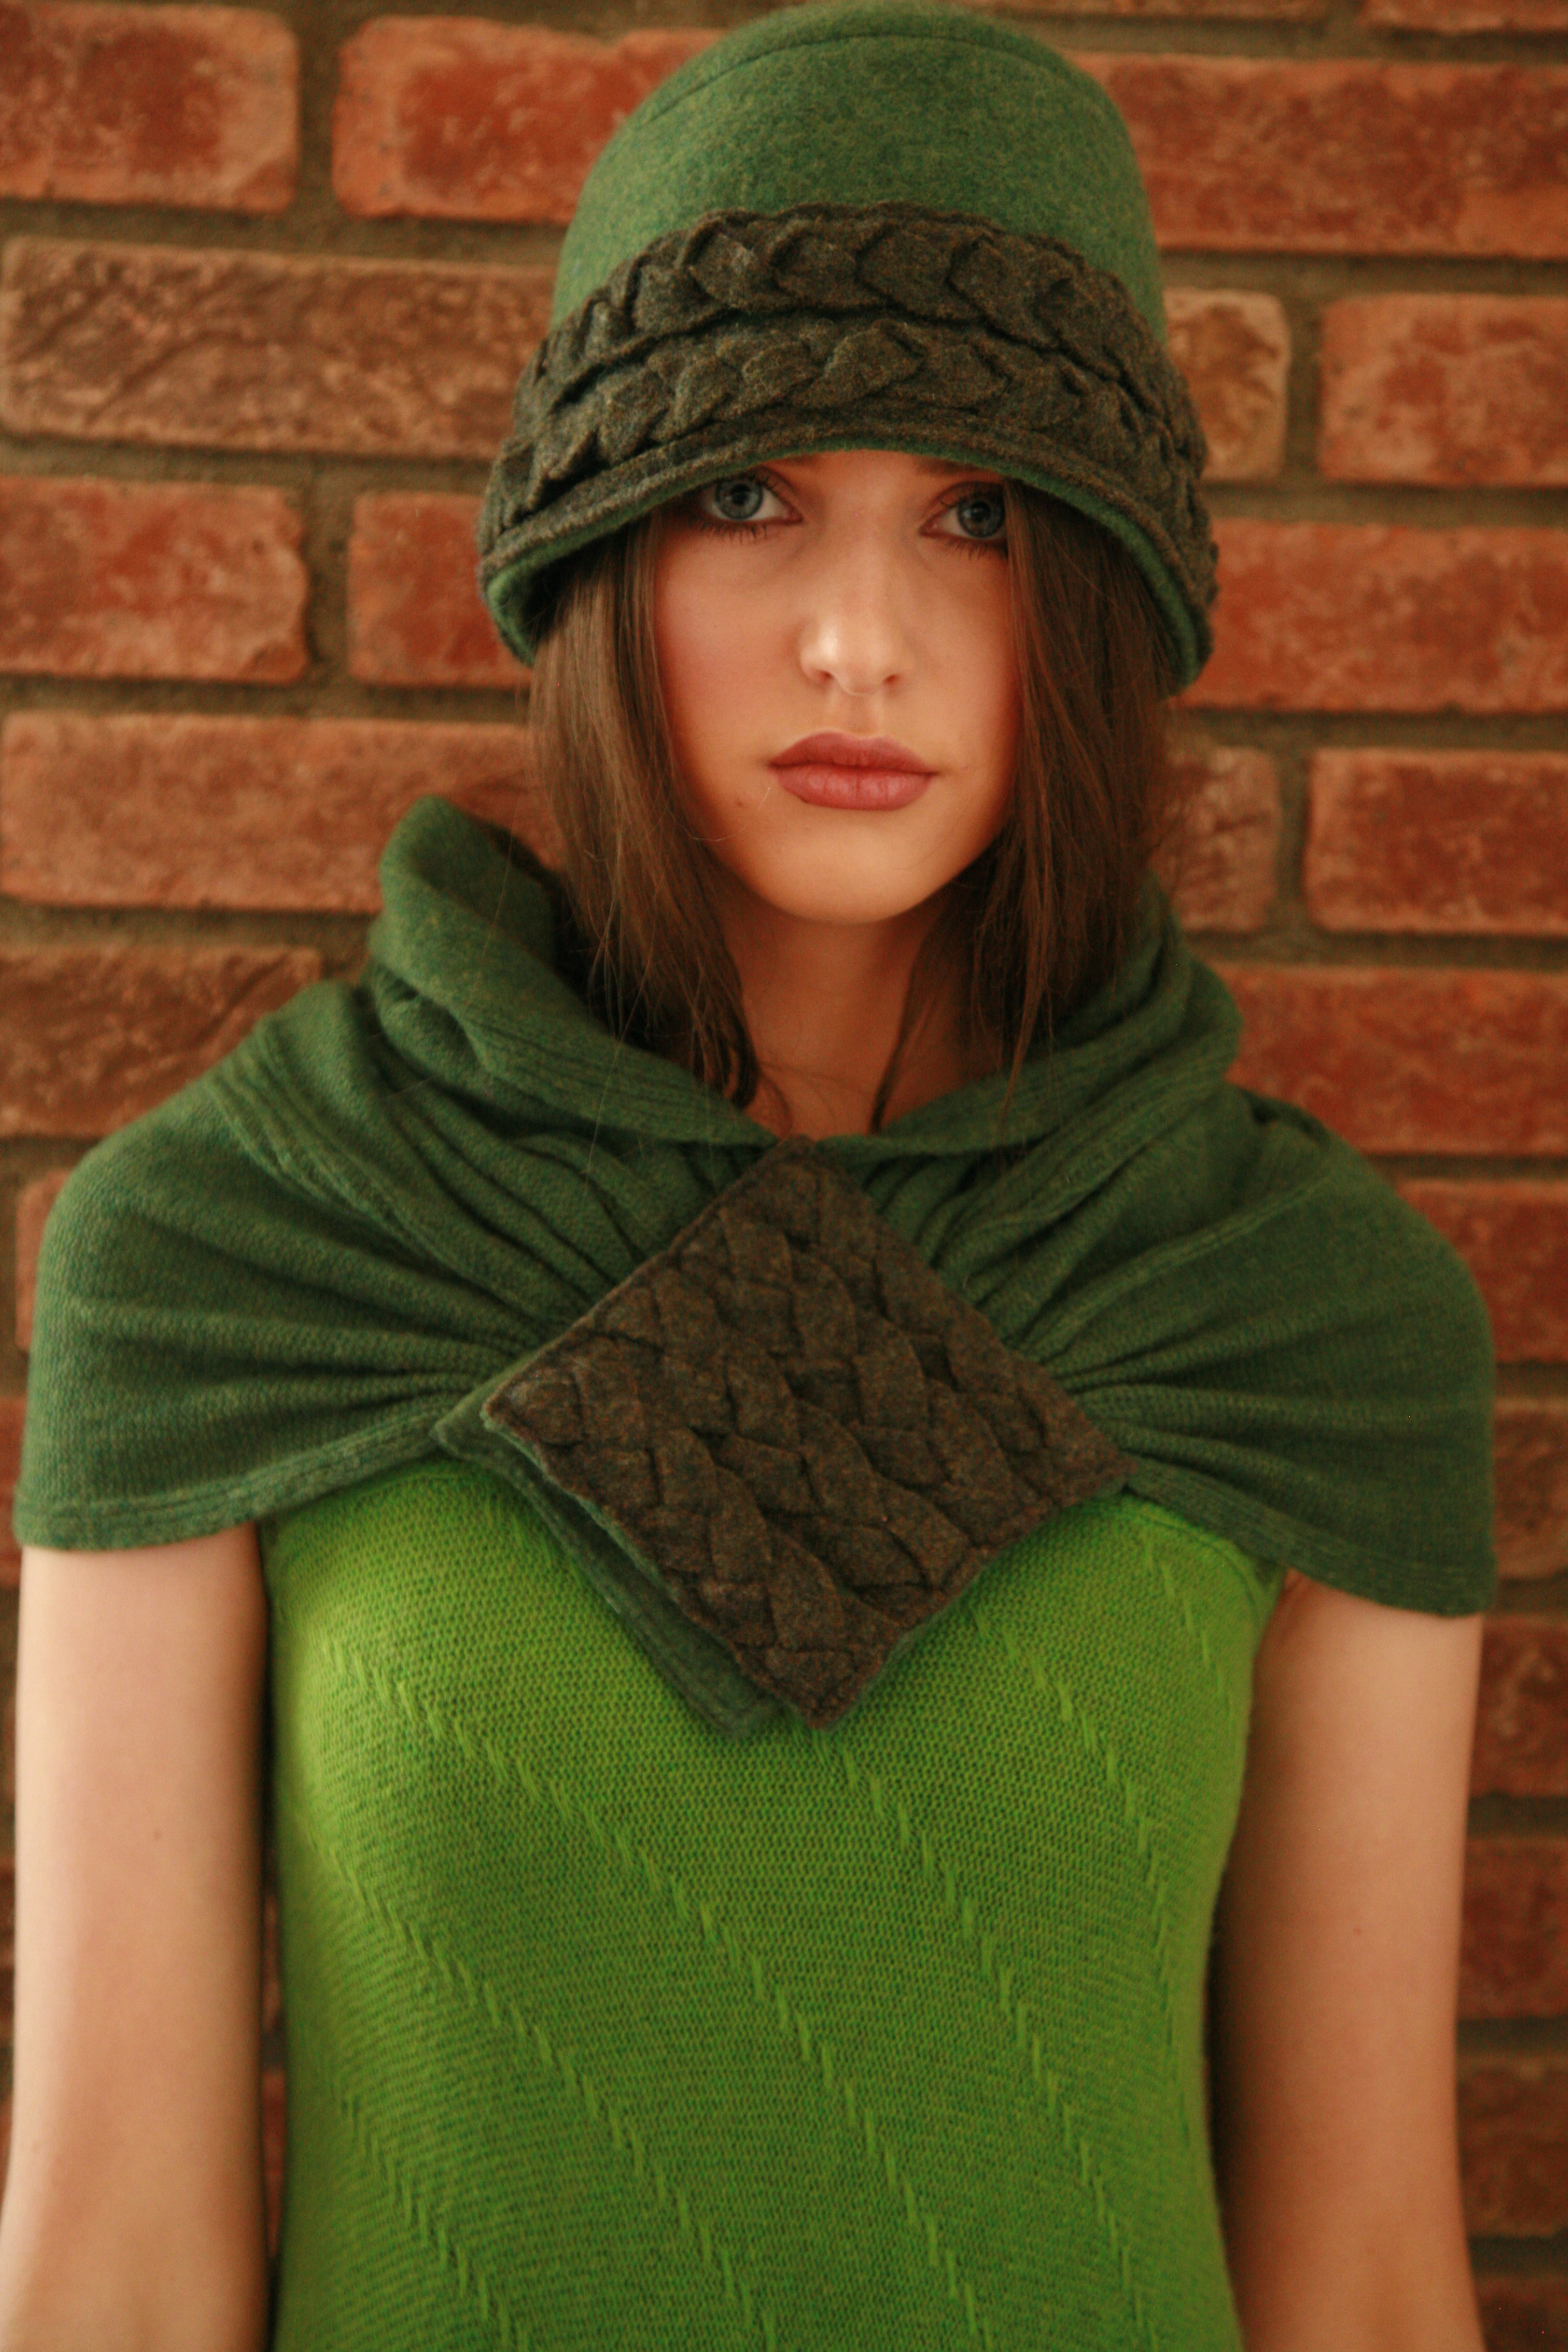 Plaited Woven Hat & Plaited Woven Scarf